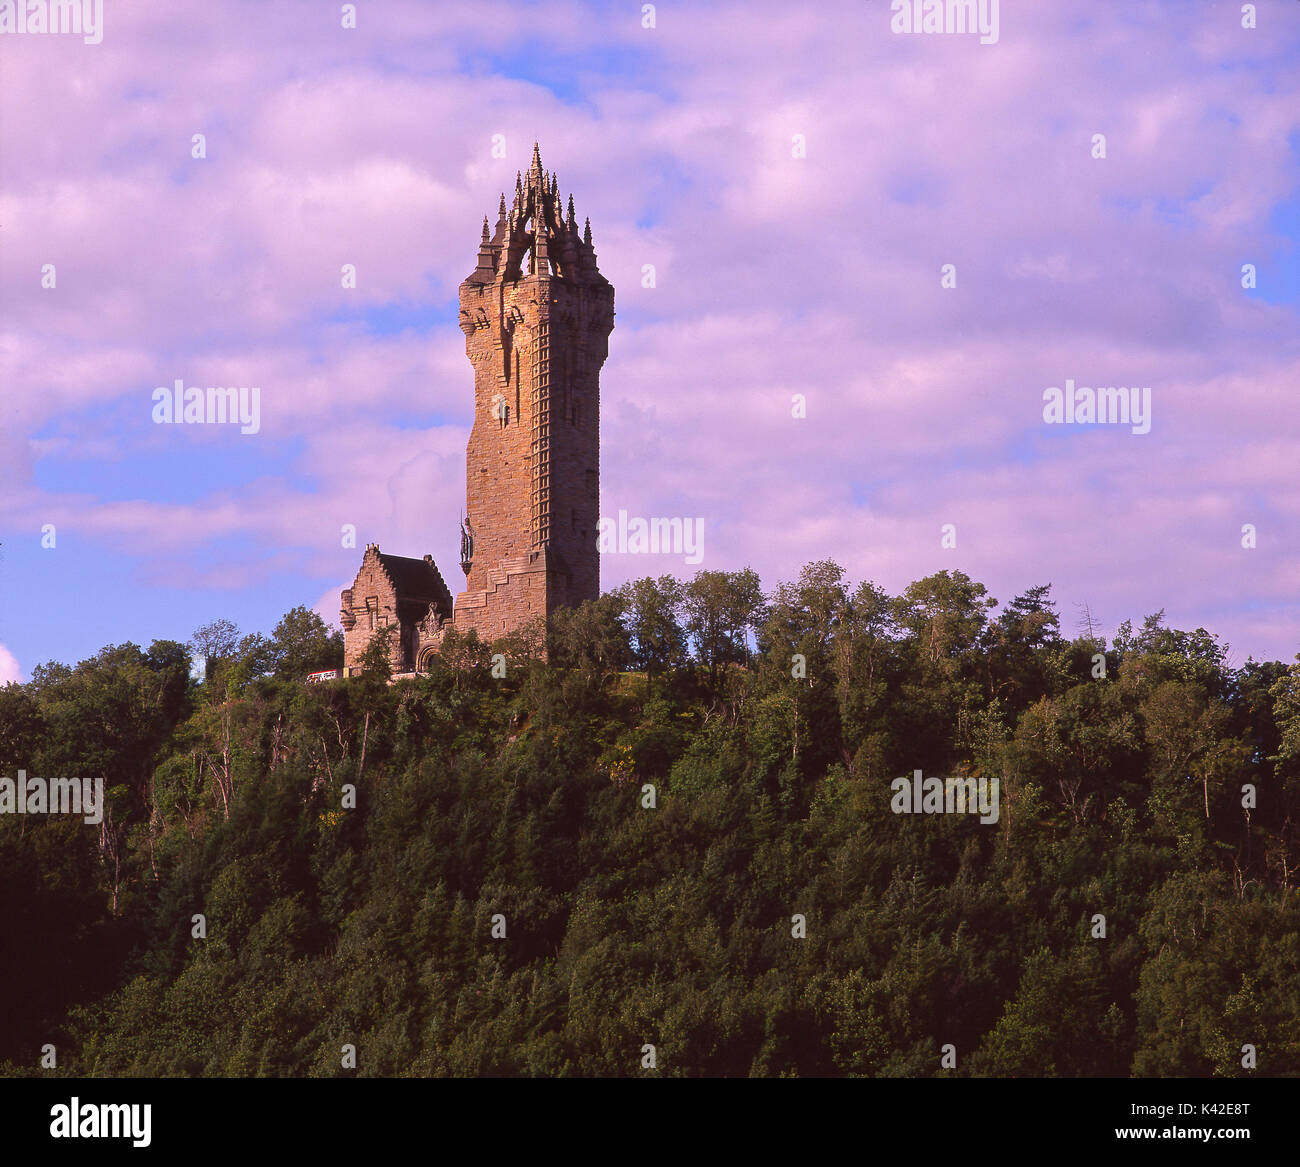 The Wallace Monument, a gothic style tower built in 1869 commemorates the deeds of Sir William Wallace, overlooking Forth Valley, Stirling, Central Sc - Stock Image